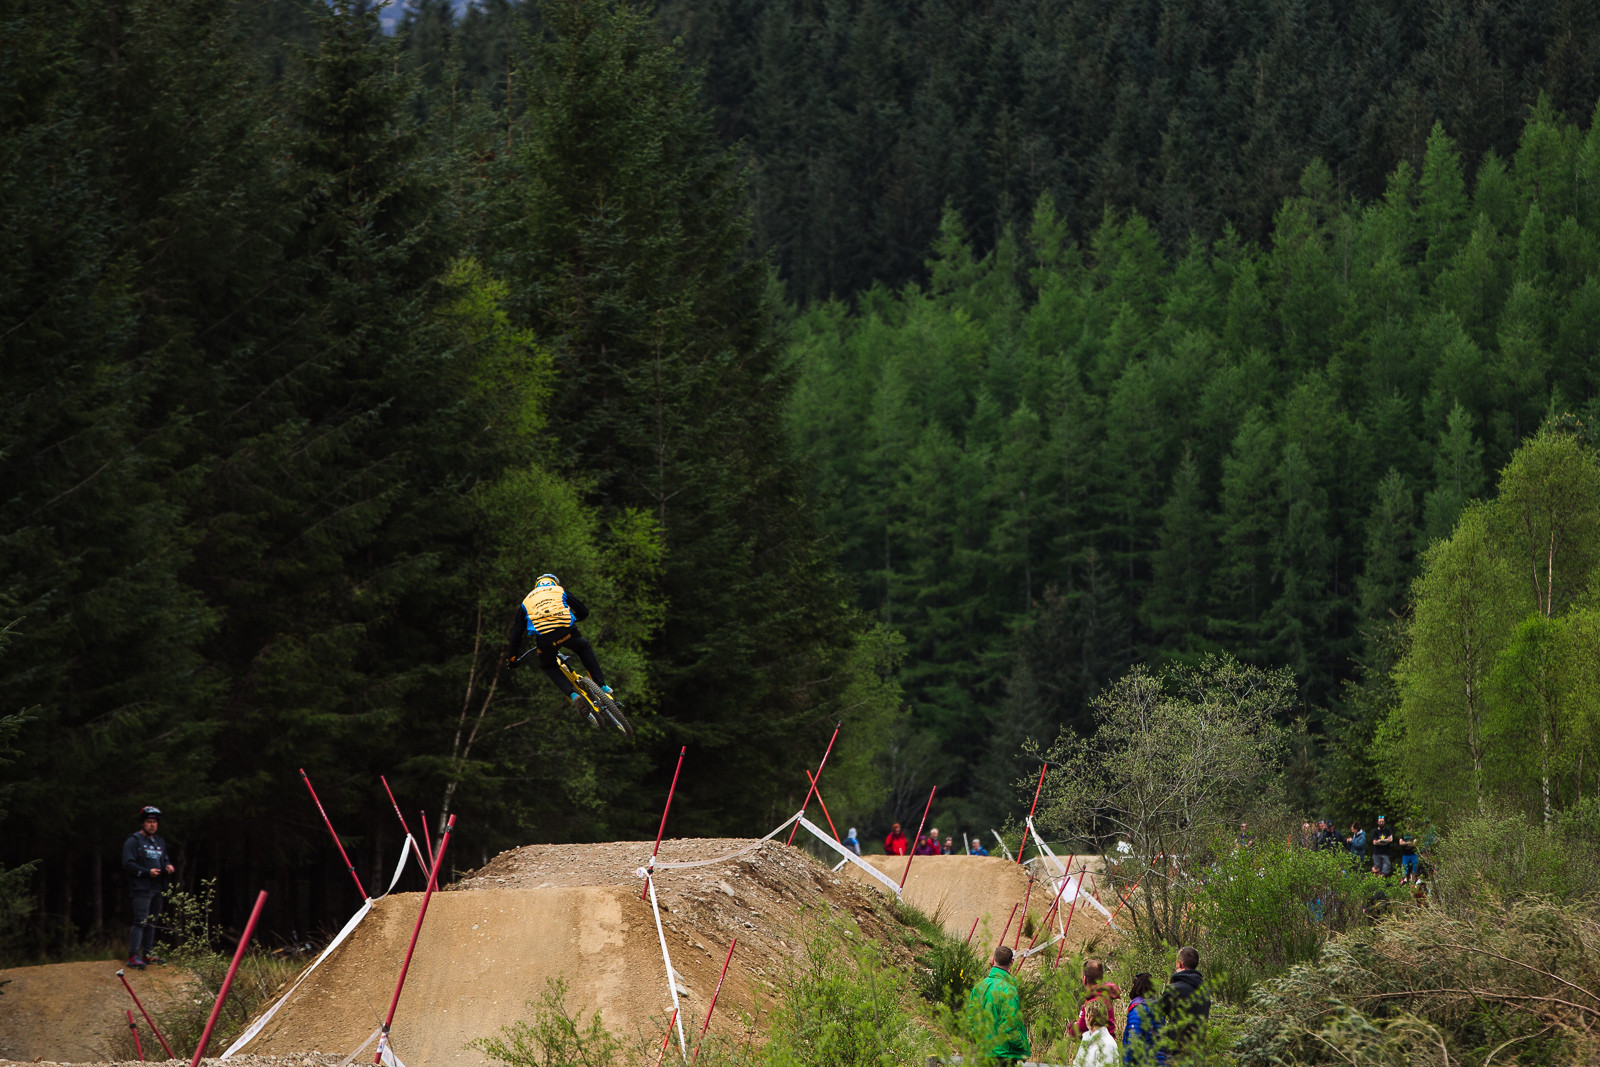 Phil Atwill, Fort William BDS - Fort William DH Action from the British Downhill Series - Mountain Biking Pictures - Vital MTB